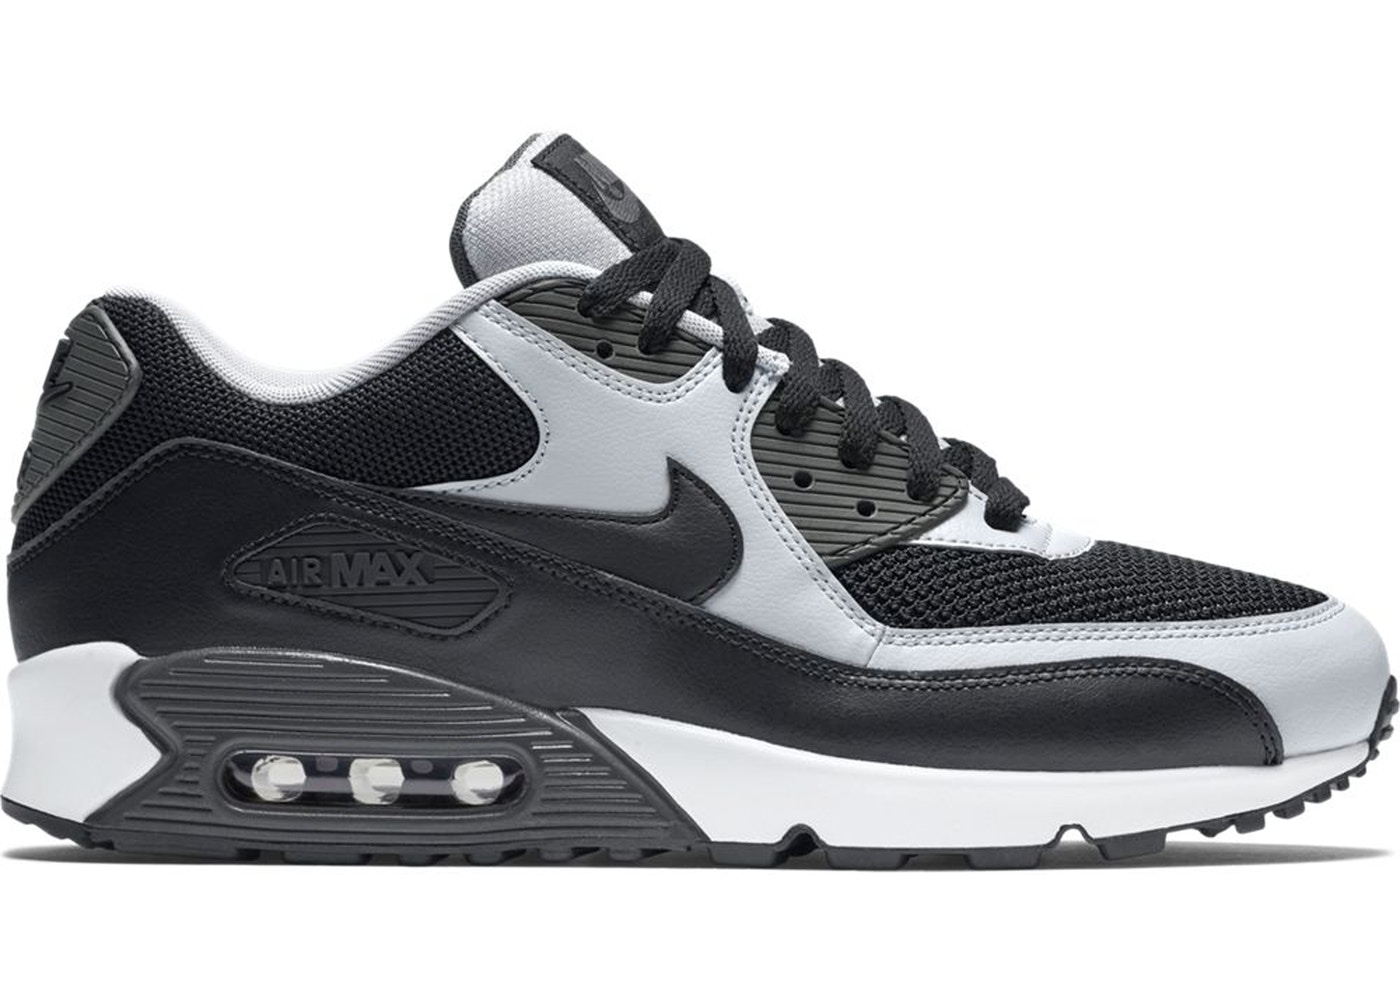 buy popular ce3e4 a56da Air Max 90 Black Wolf Grey - 537384-053